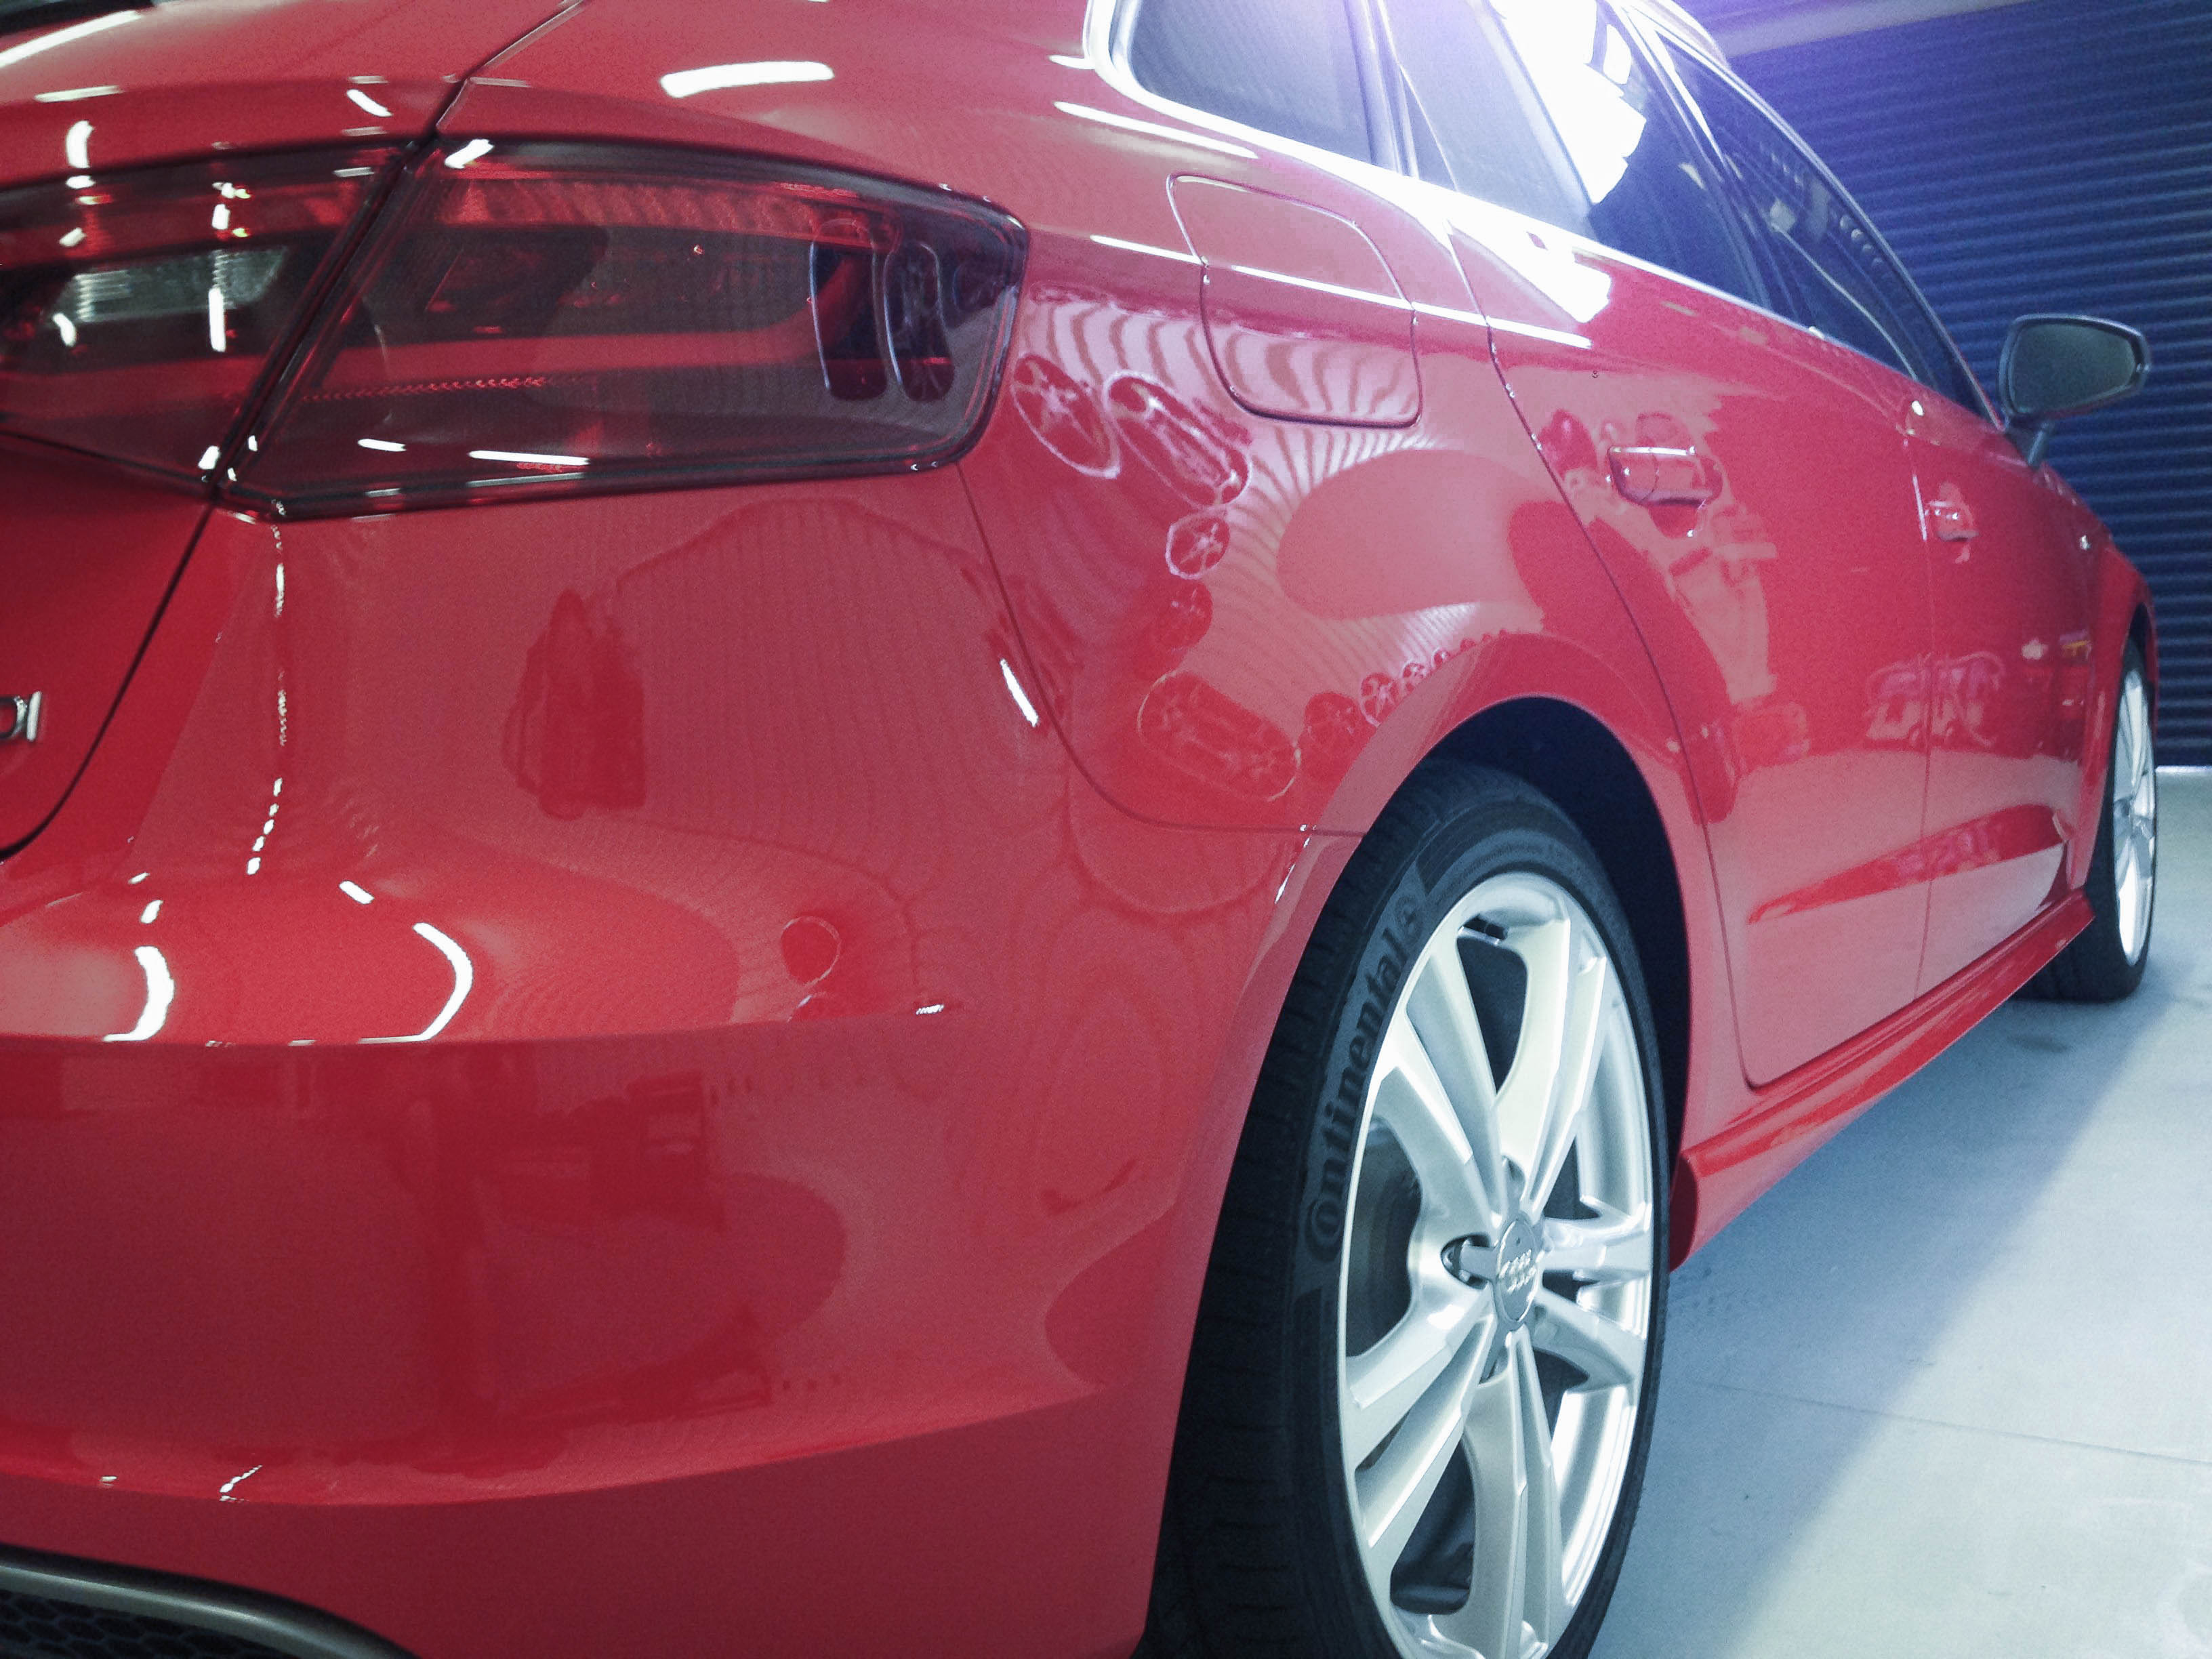 Audi A3 (Misano Red) – Rear